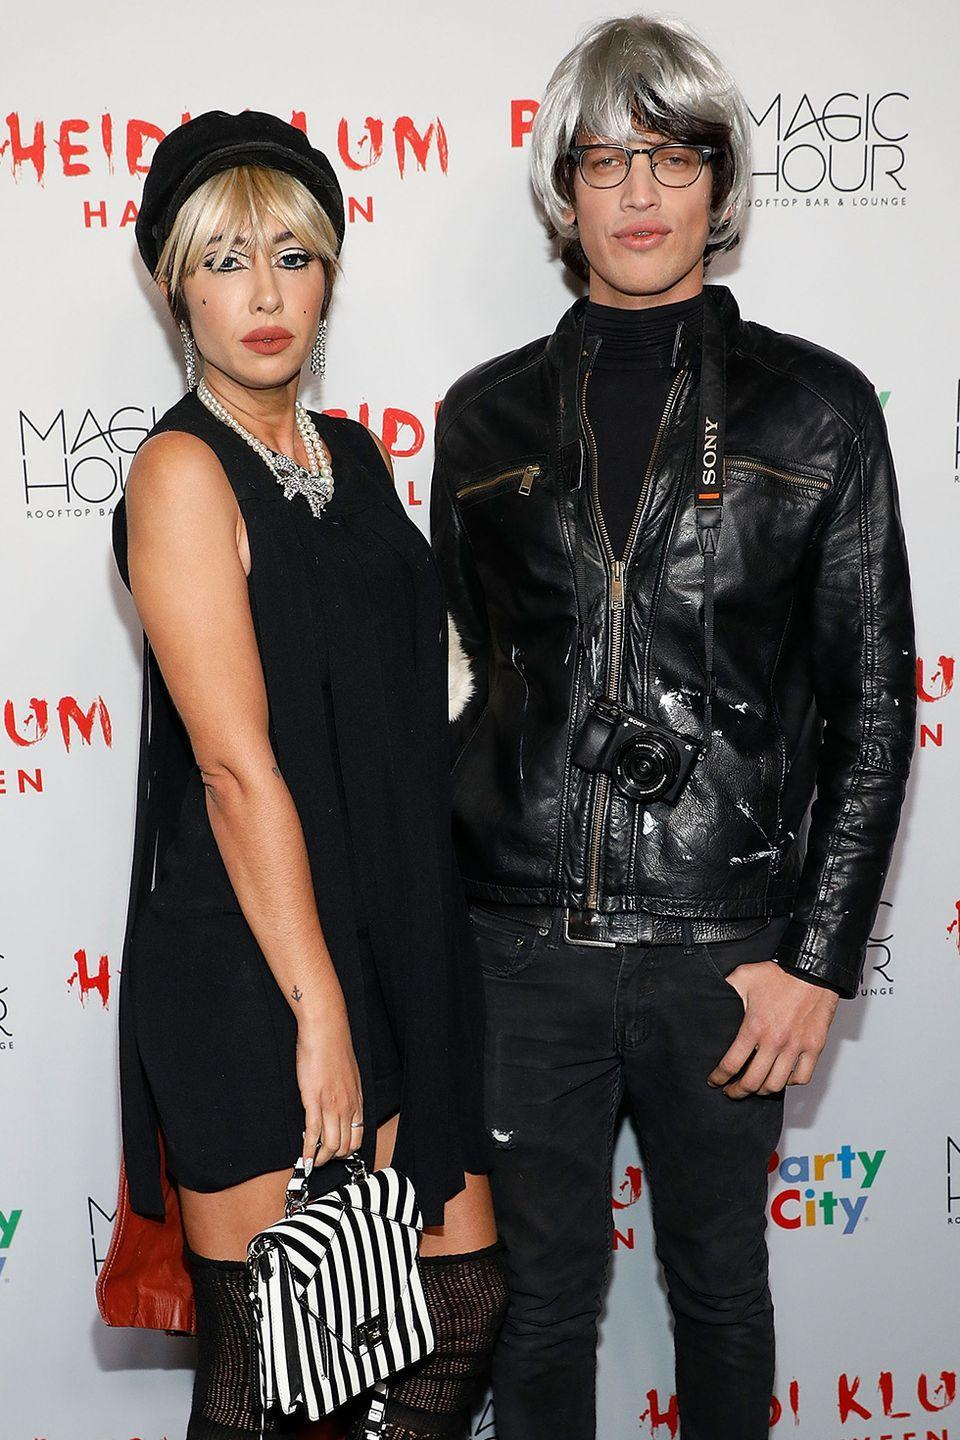 <p>Actress Jackie Cruz and boyfriend Fernando Garcia went for a 1970s Andy Warhol-inspired look at Heidi Klum's 2017 Halloween party in New York City.</p>